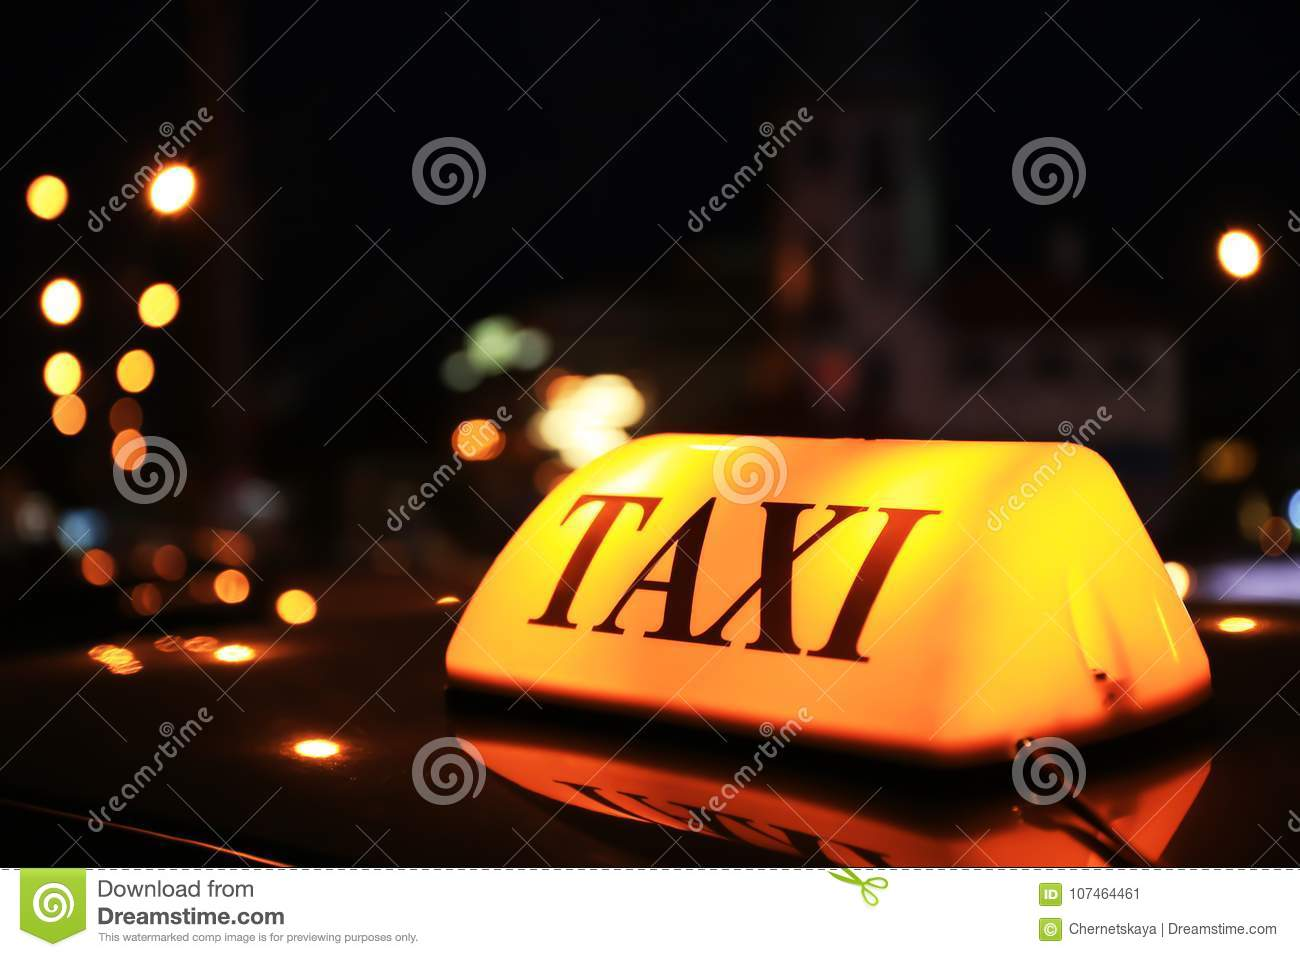 Taxi roof top light at night